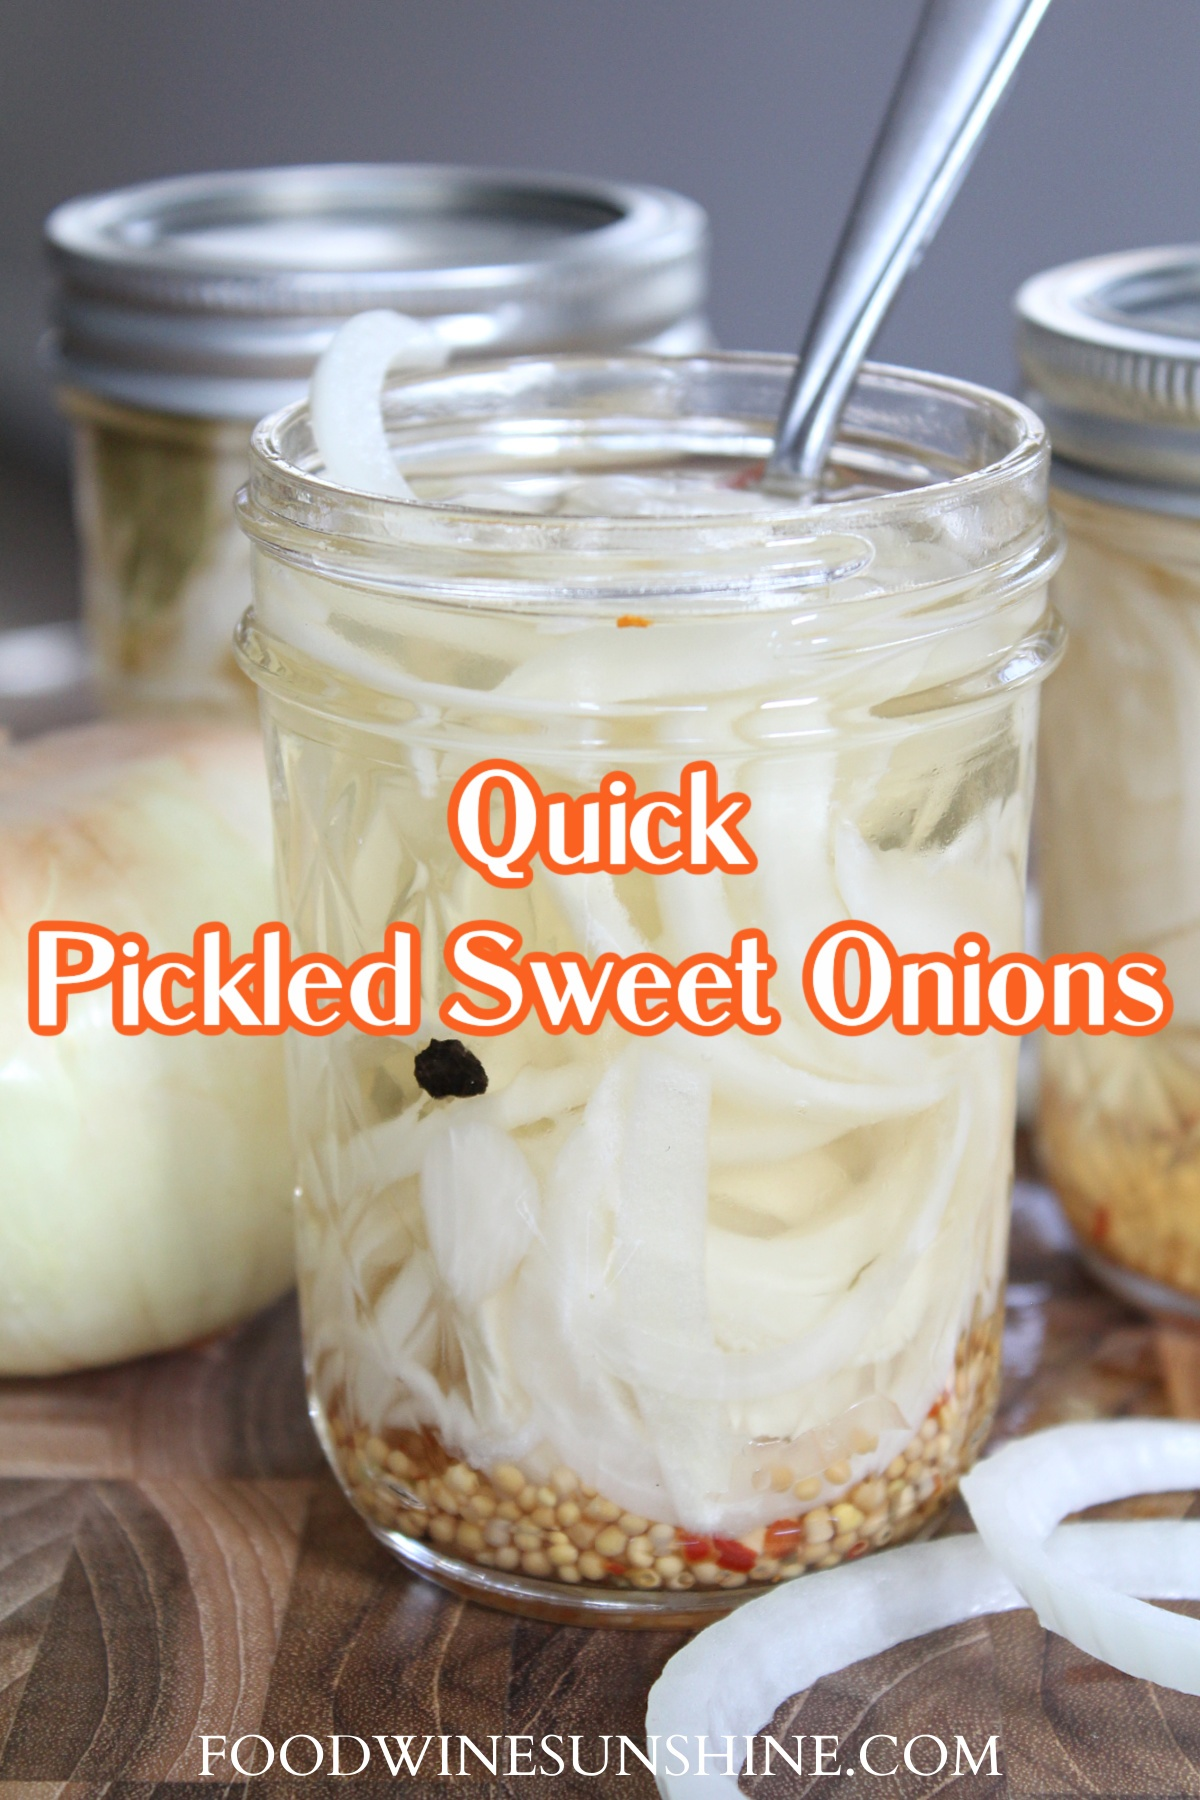 Making quick pickled sweet onions